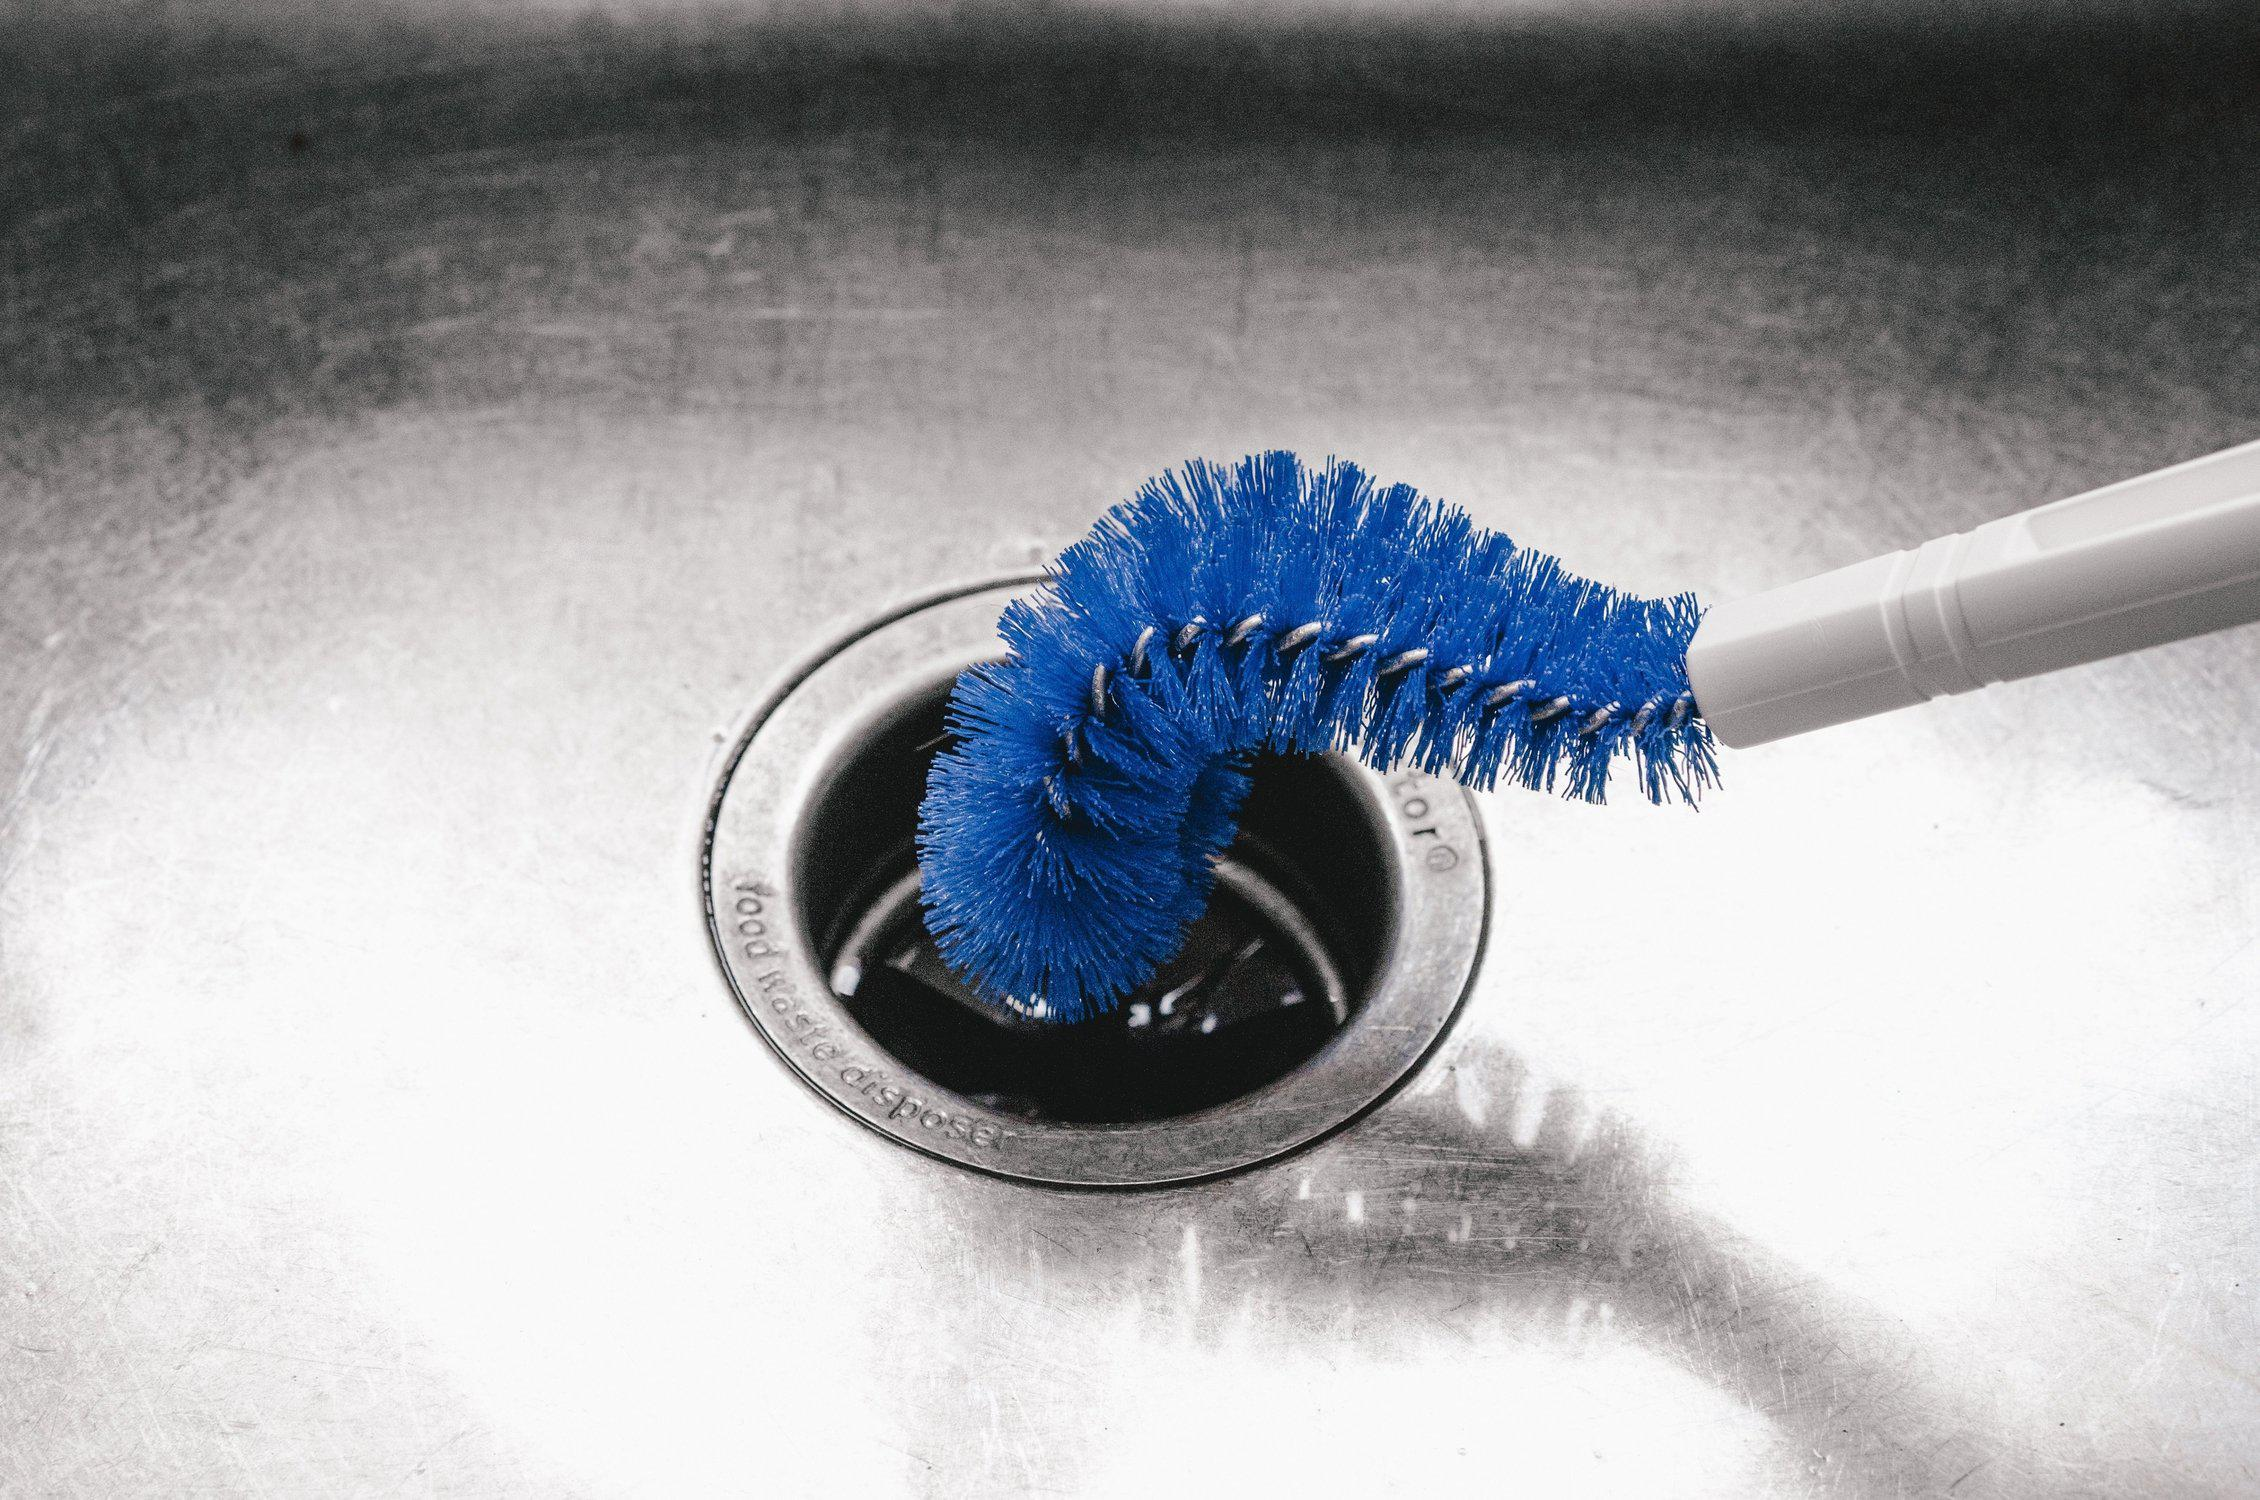 Multi-Purpose Kitchen Brush Heavy Duty Handled Scrubber w/ Hanger & Stiff Bristles-Cleaning Brushes-Fuller Brush Company